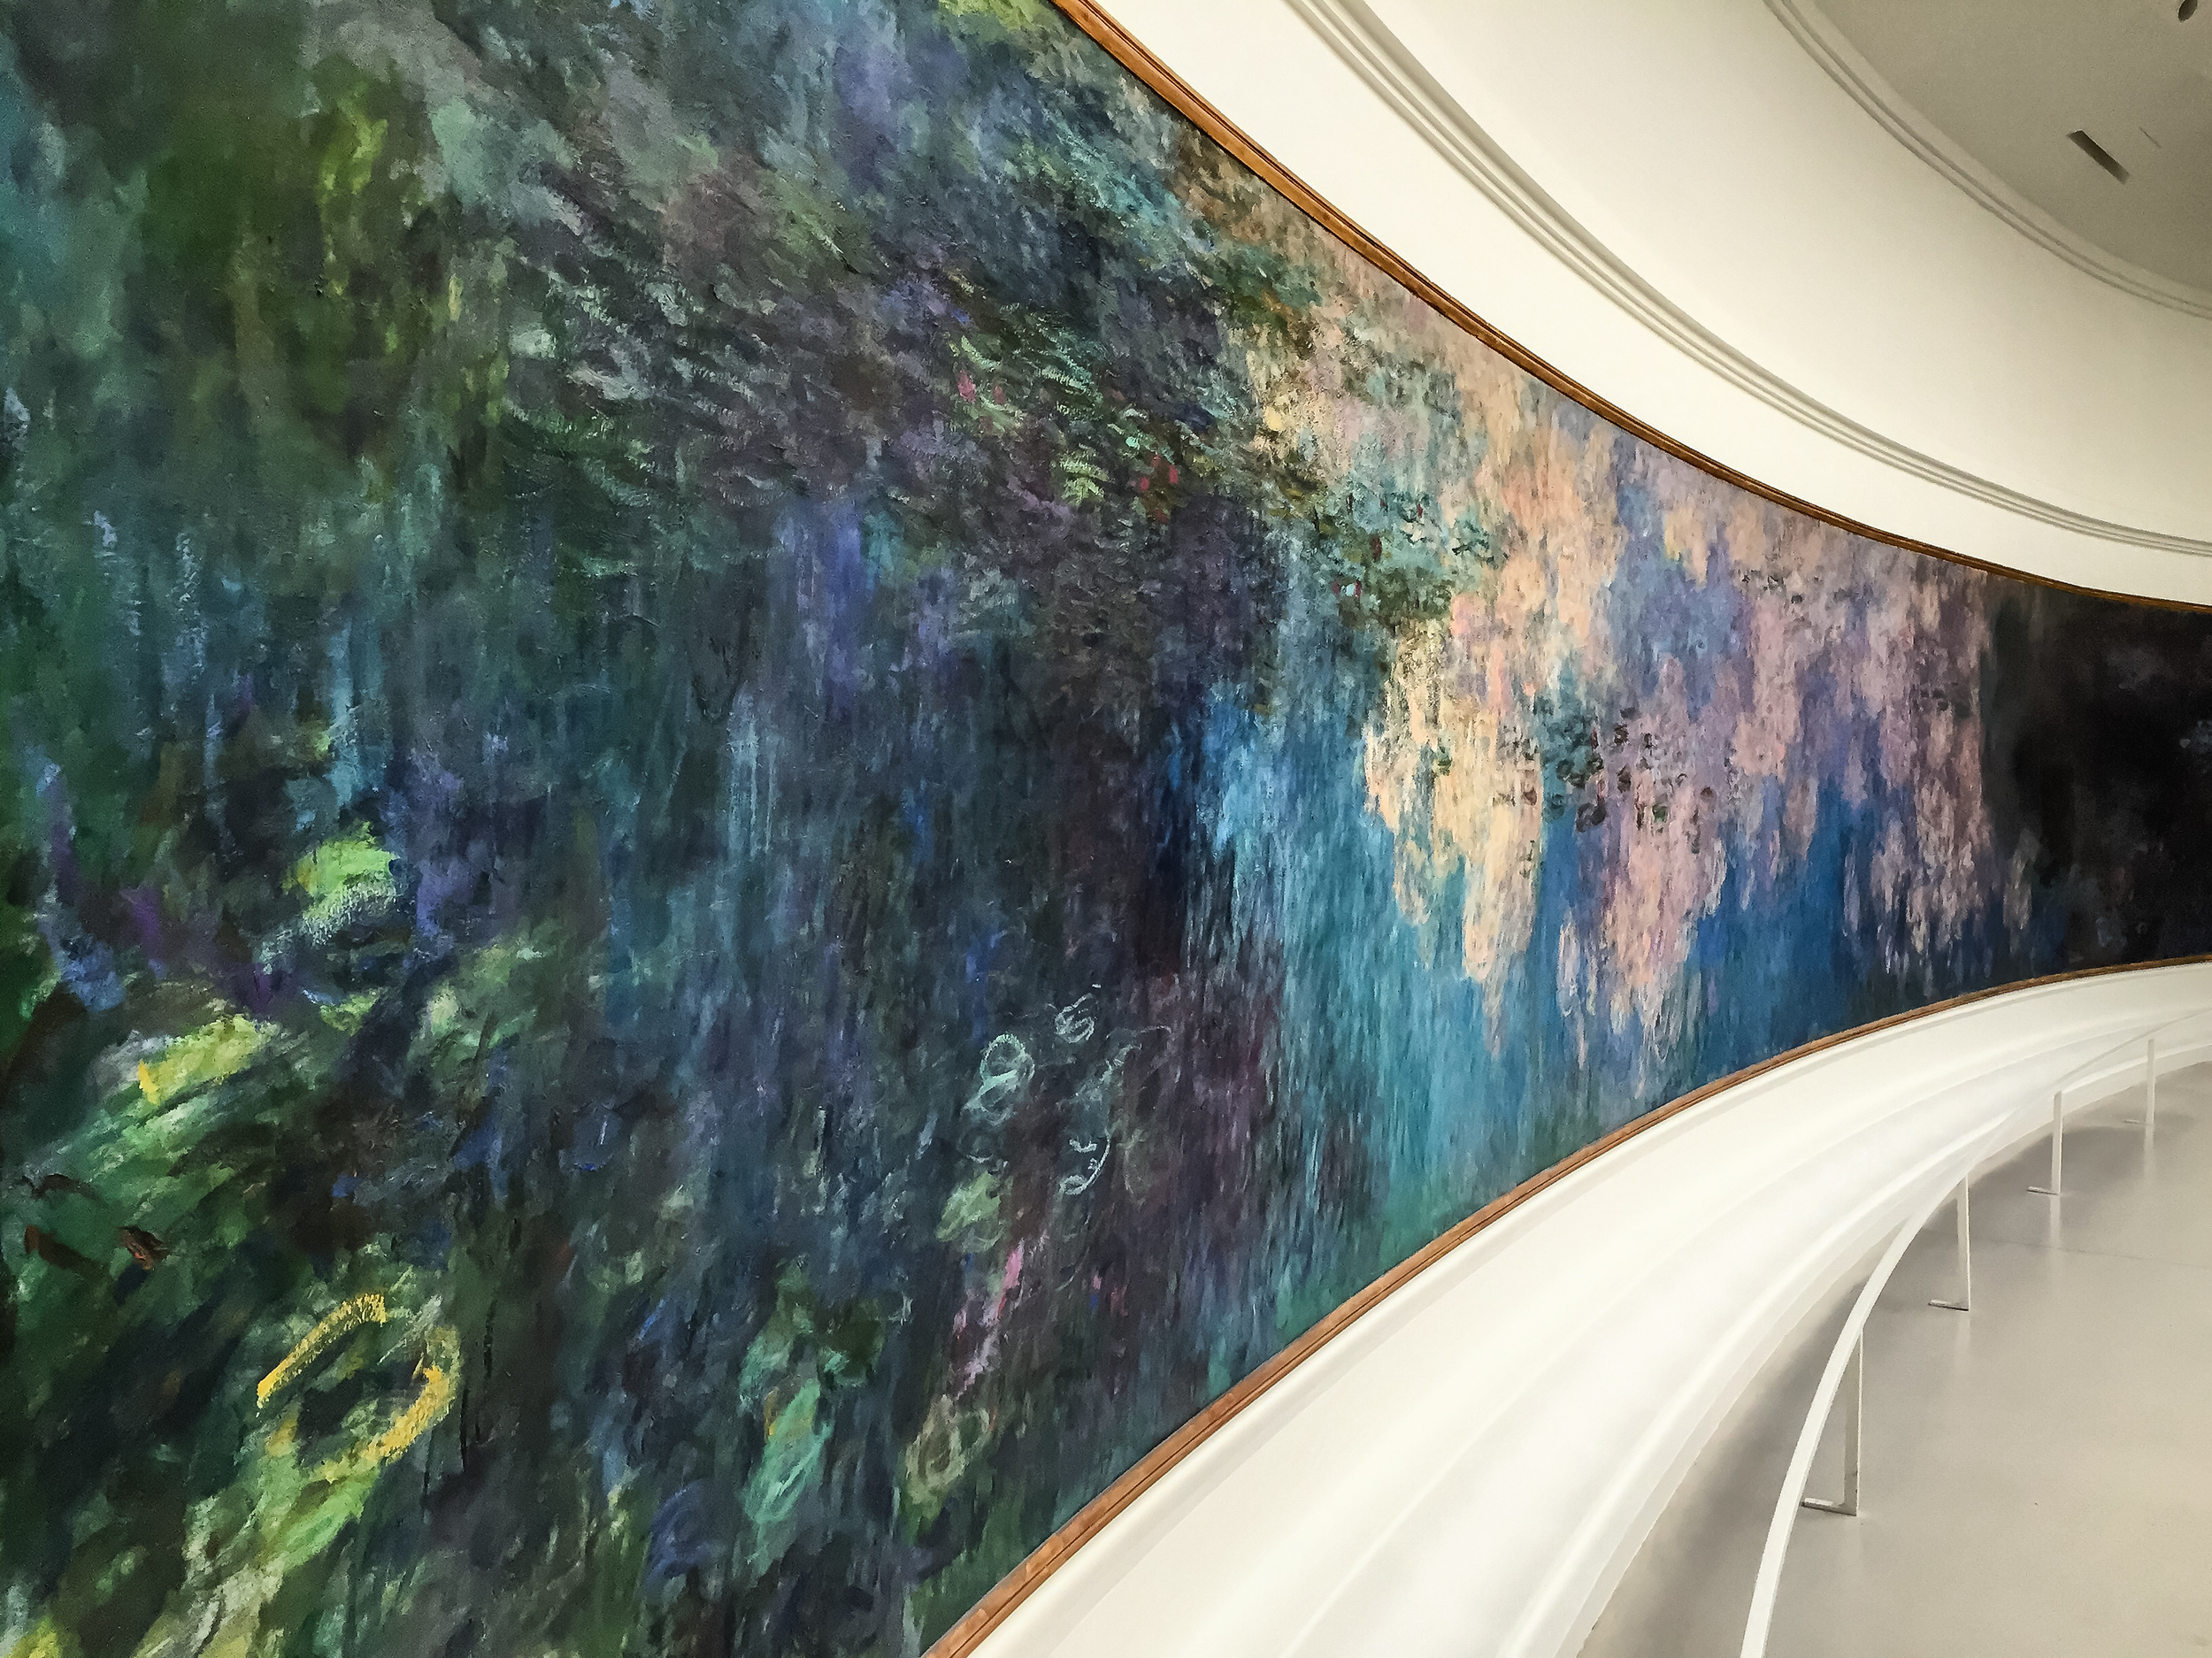 """Just one of the 8 Monet """"Water Lilies""""paintings I mentioned"""